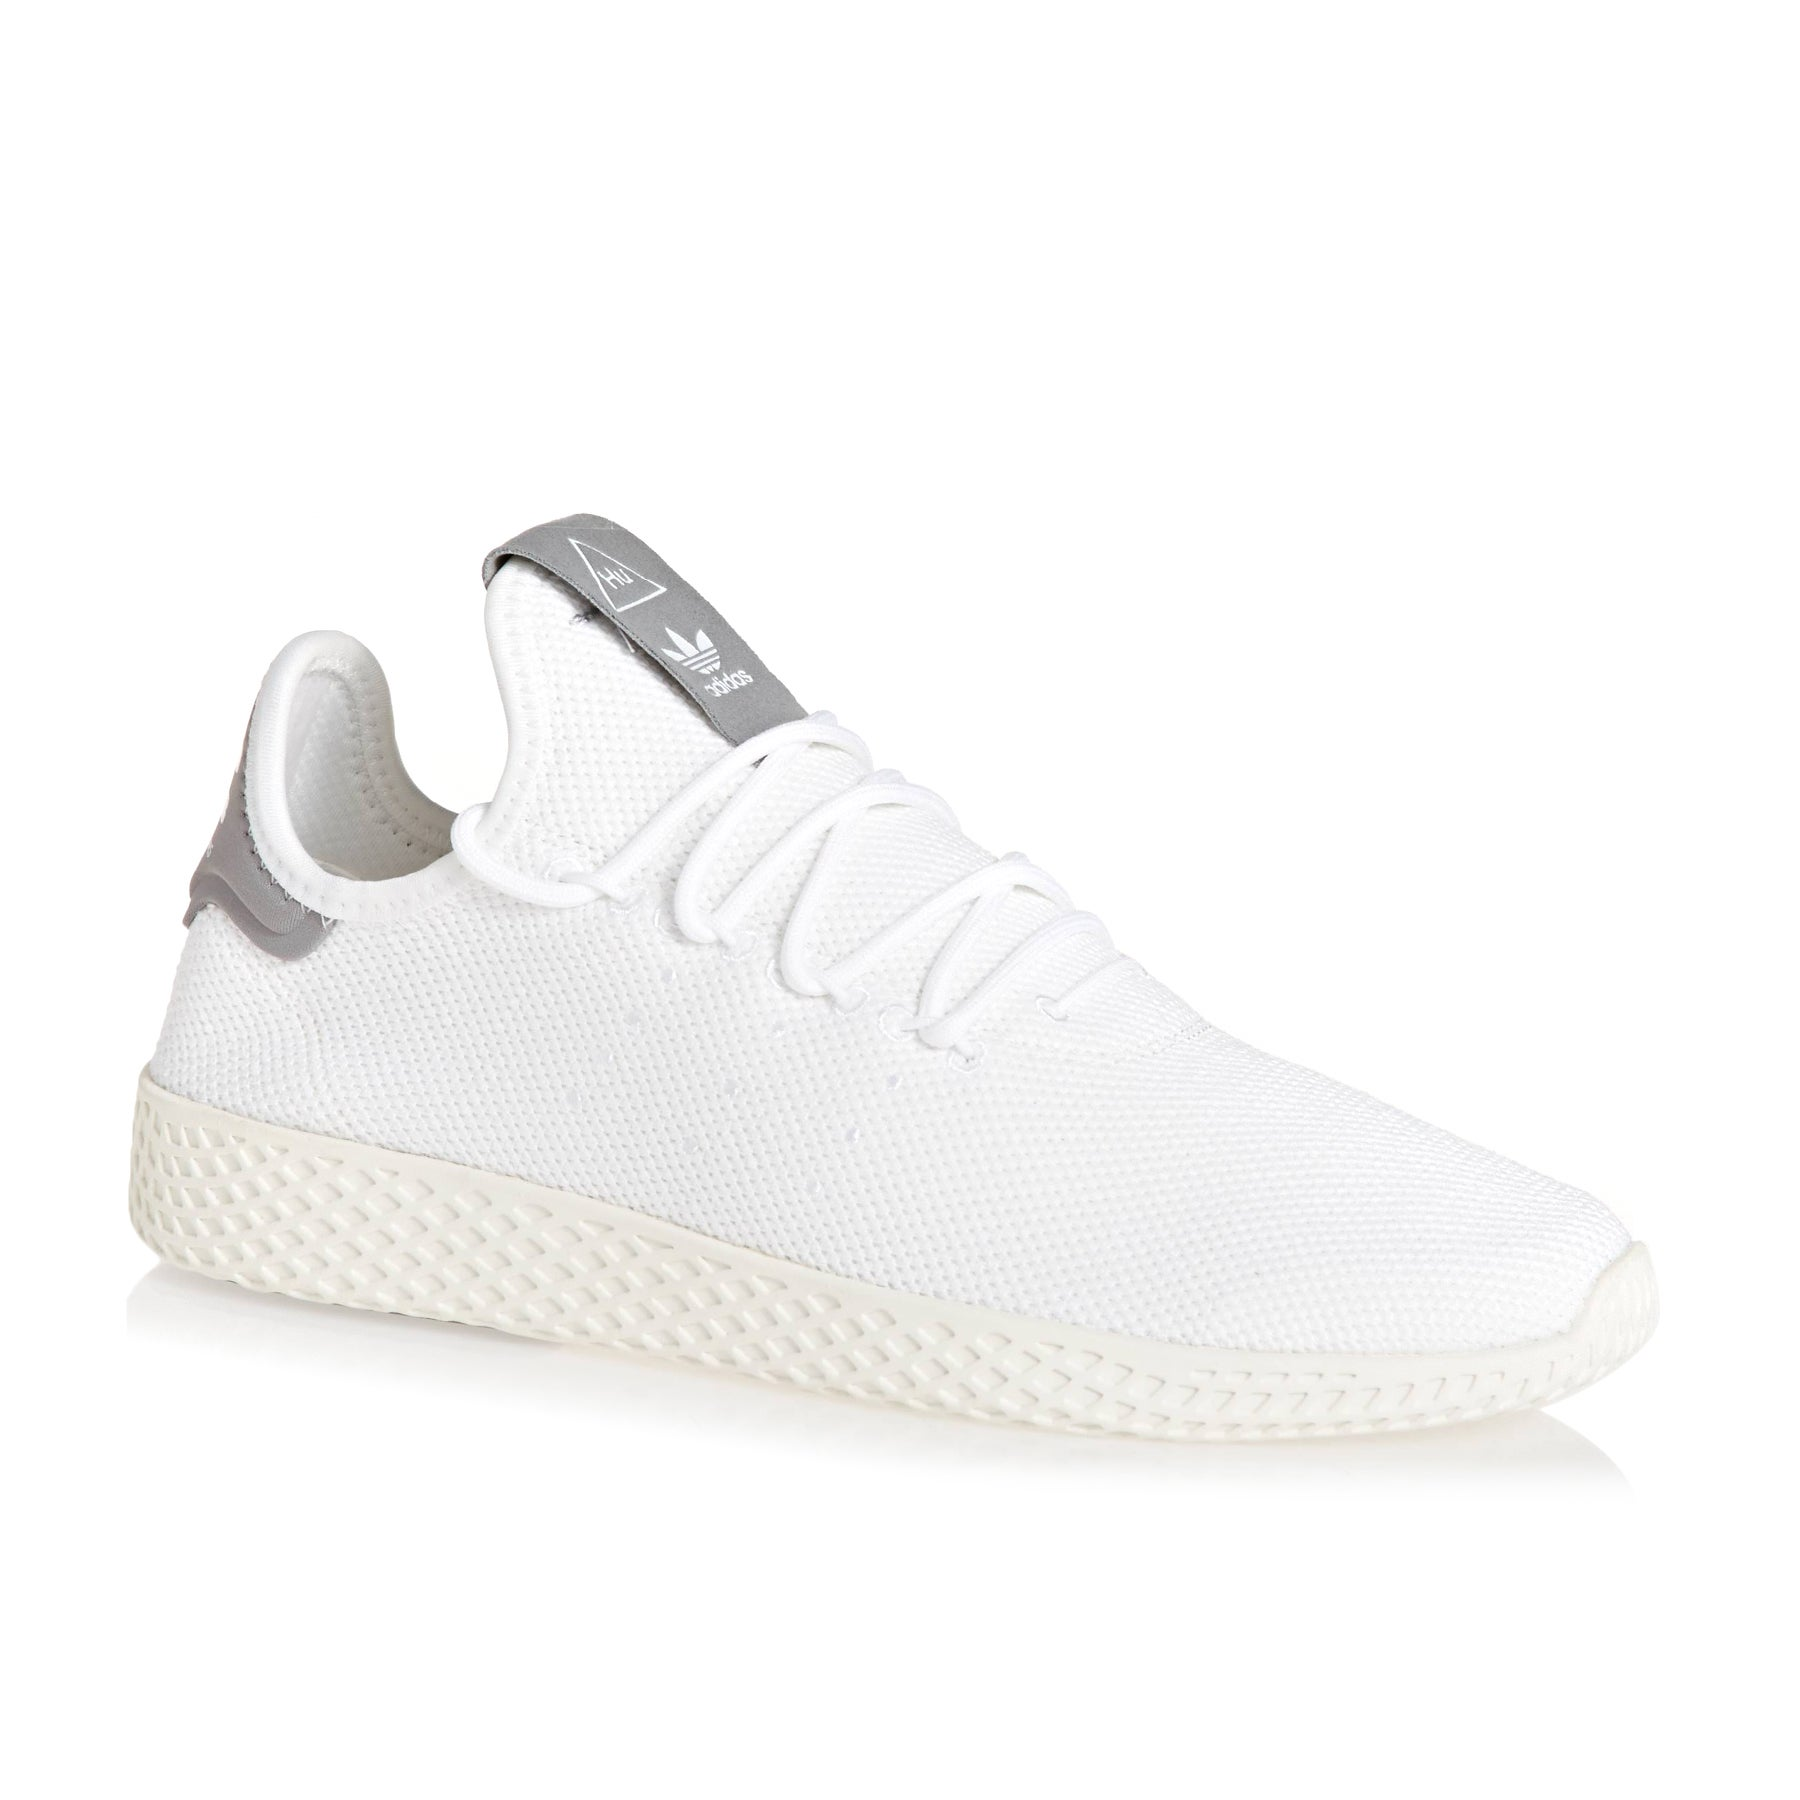 Adidas Originals Pharrell Williams Tennis HU Shoes - White